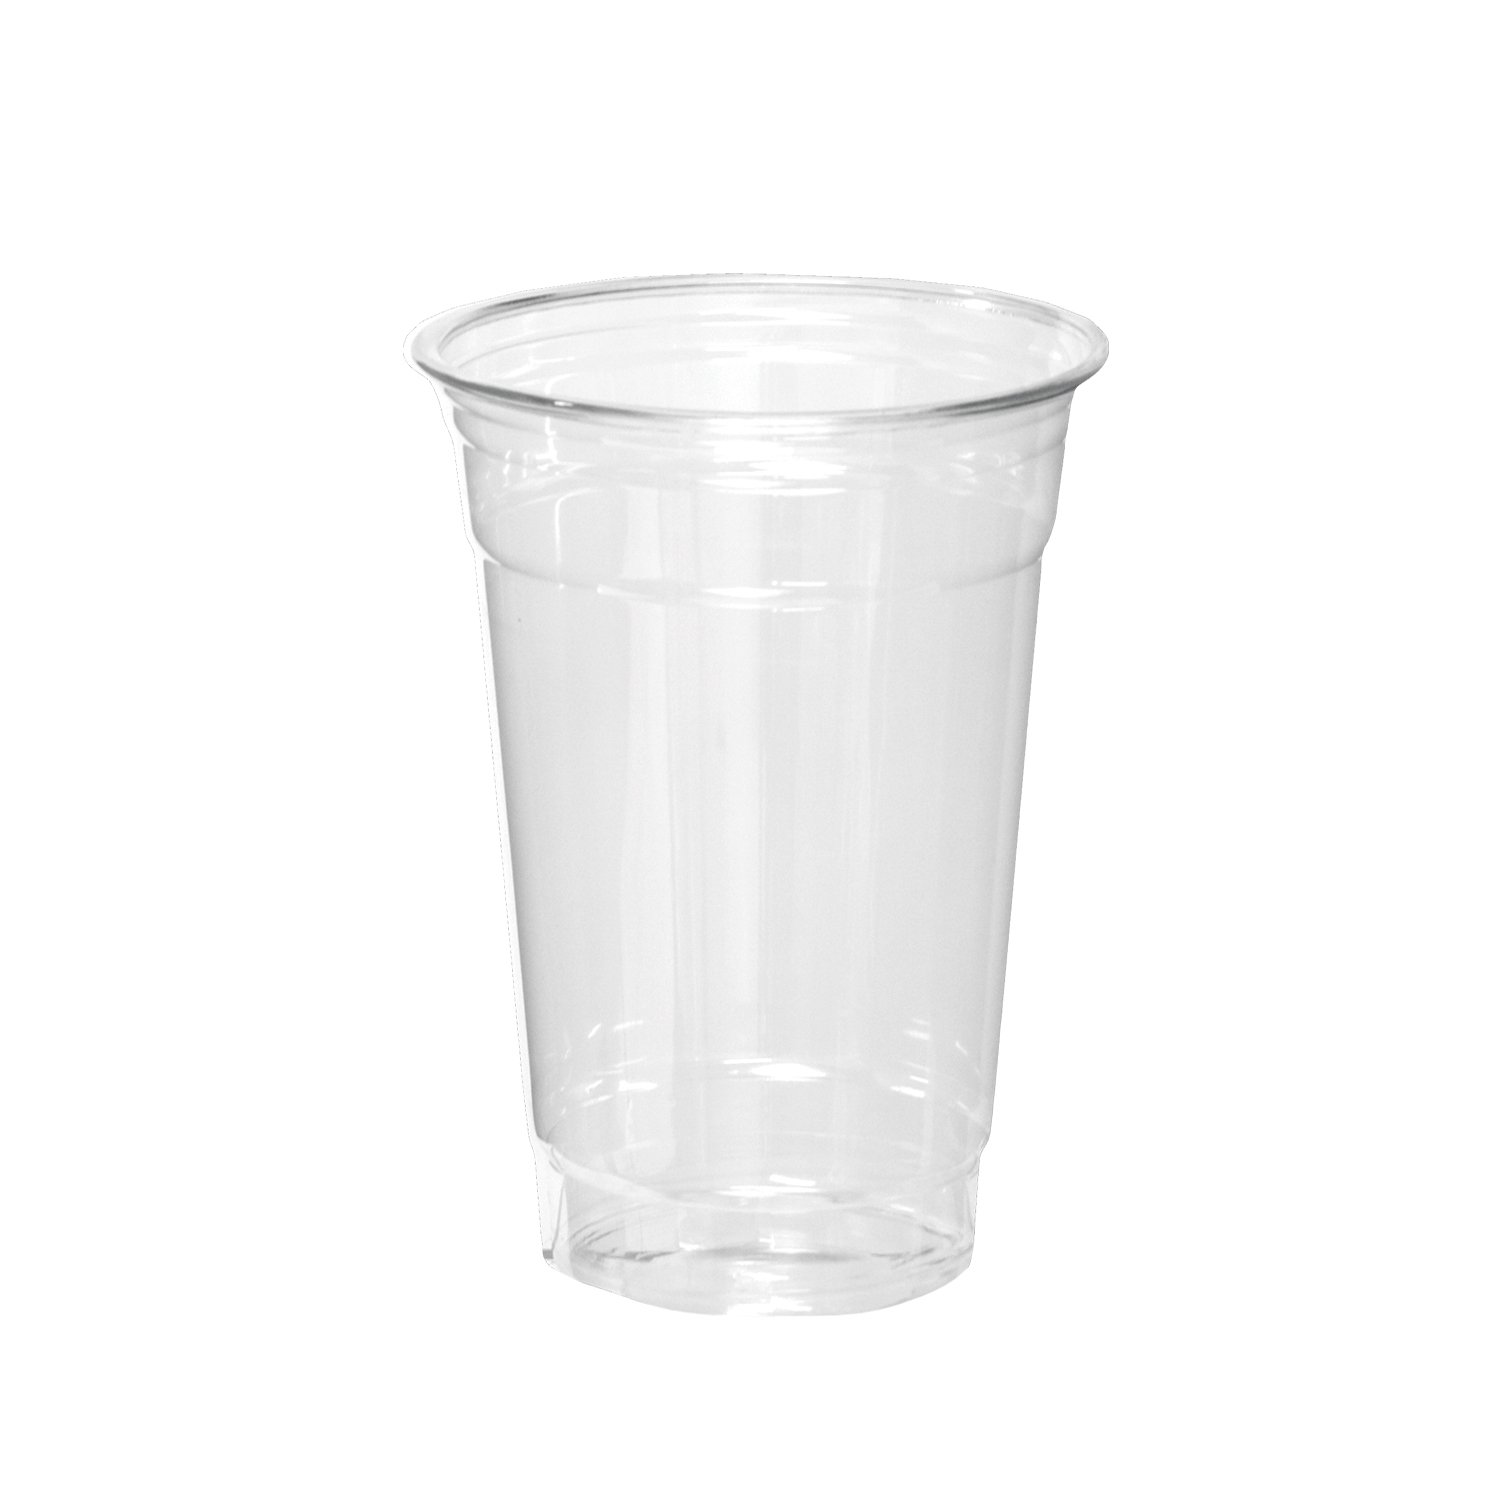 Party Essentials 20 Count Soft Plastic Party Cups, 16-Ounce, Clear